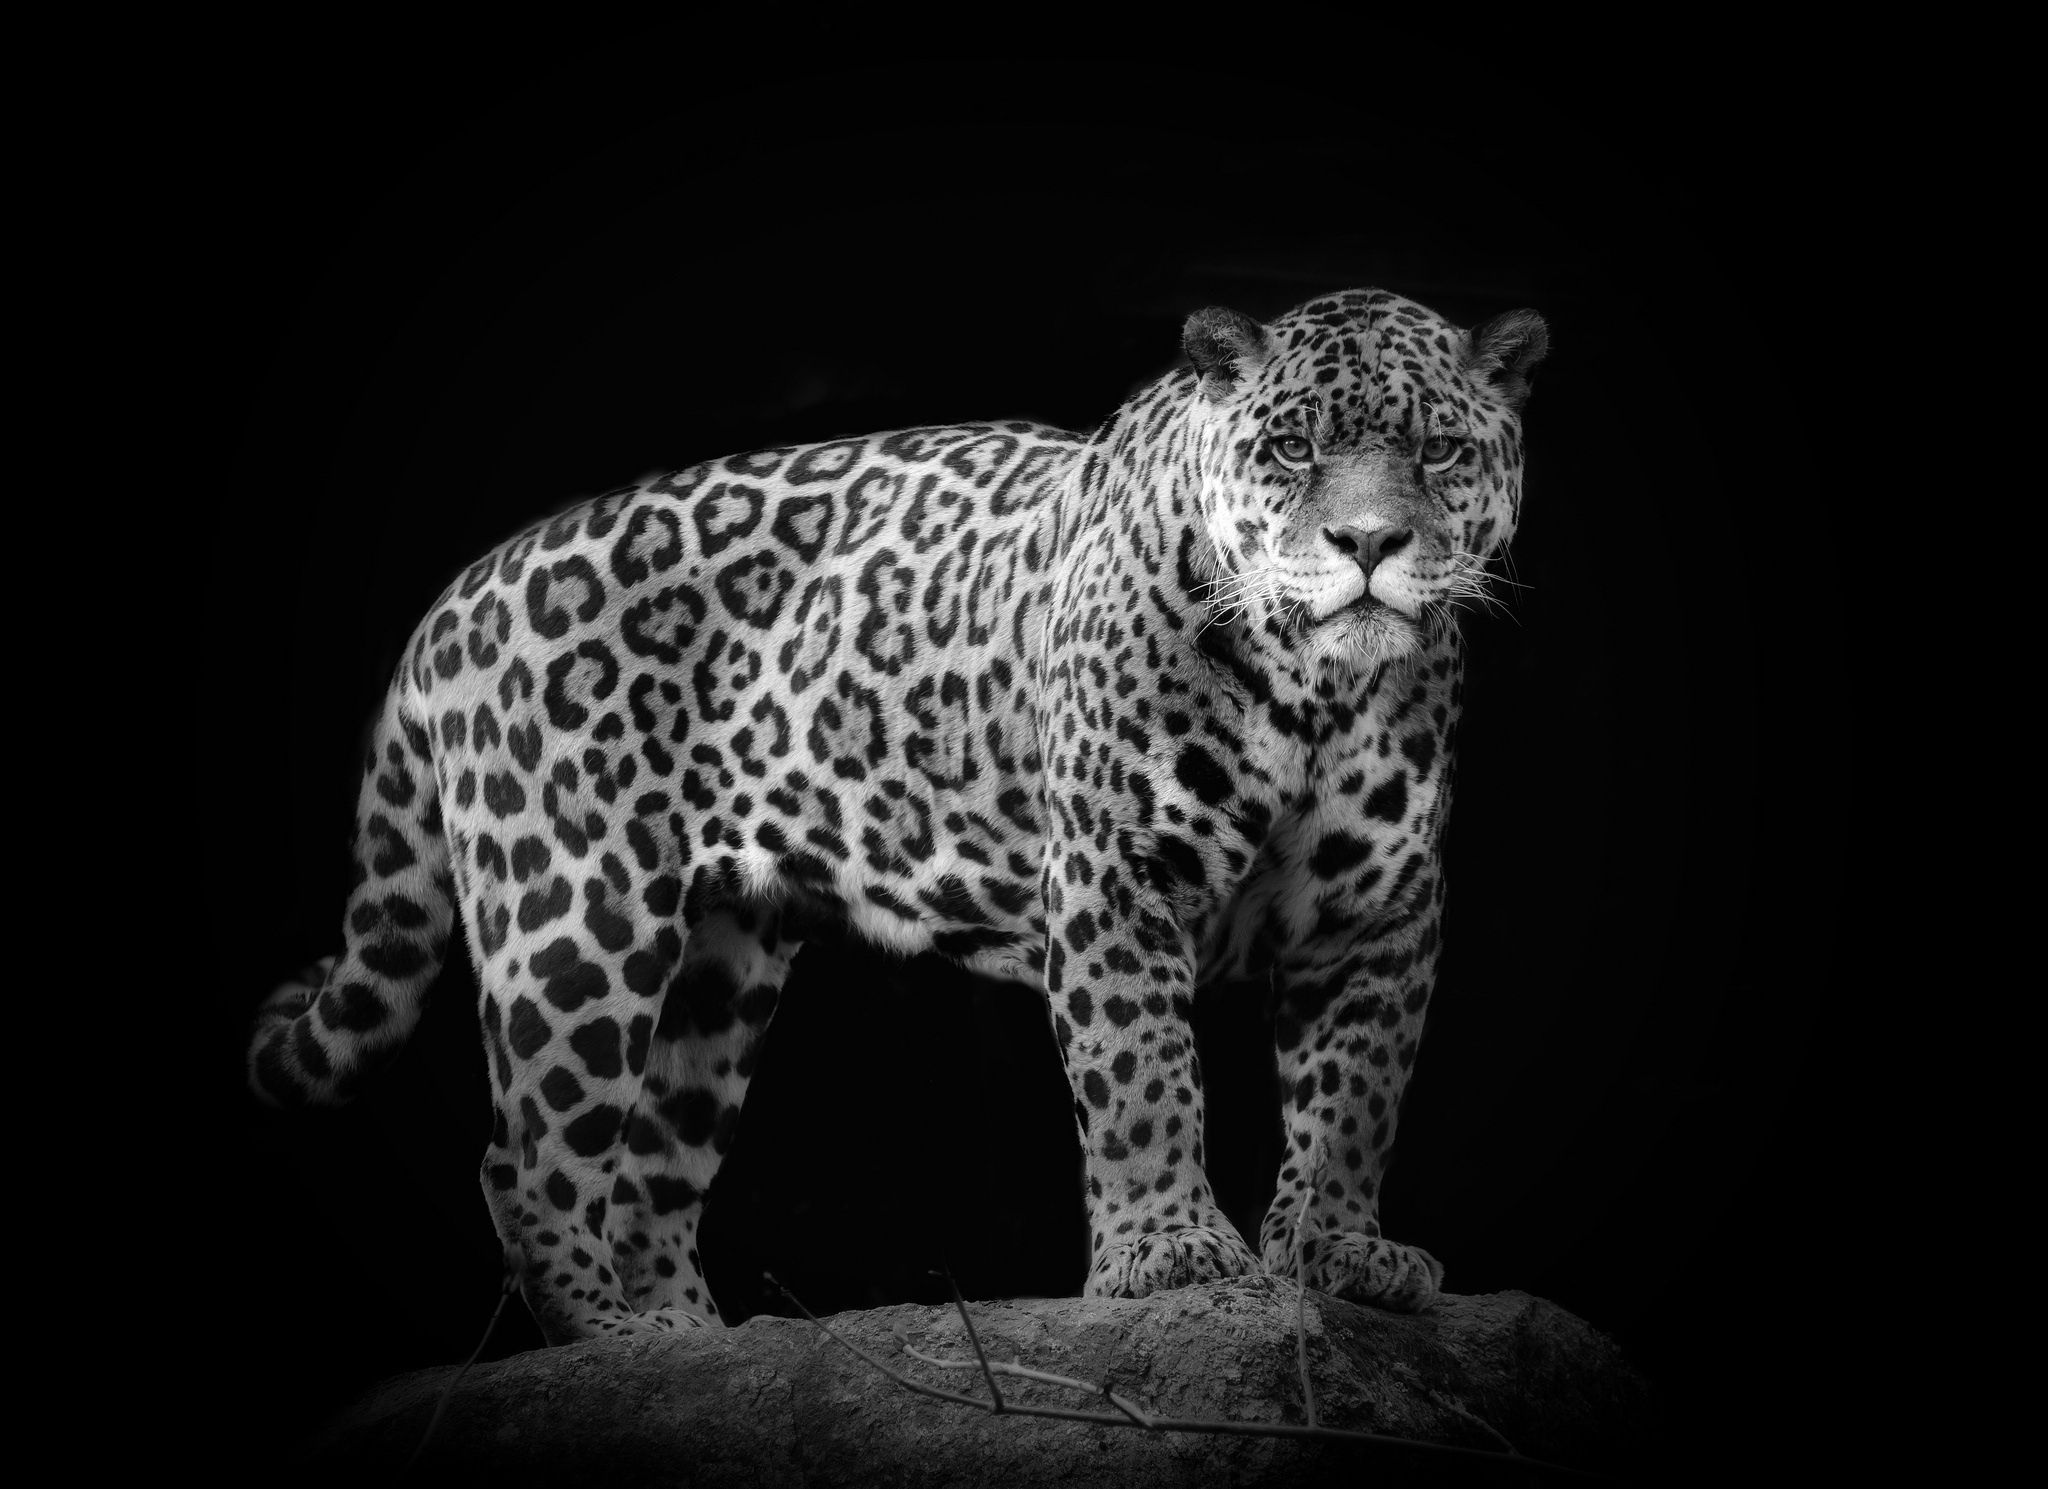 13+ Black and white animal pictures ideas